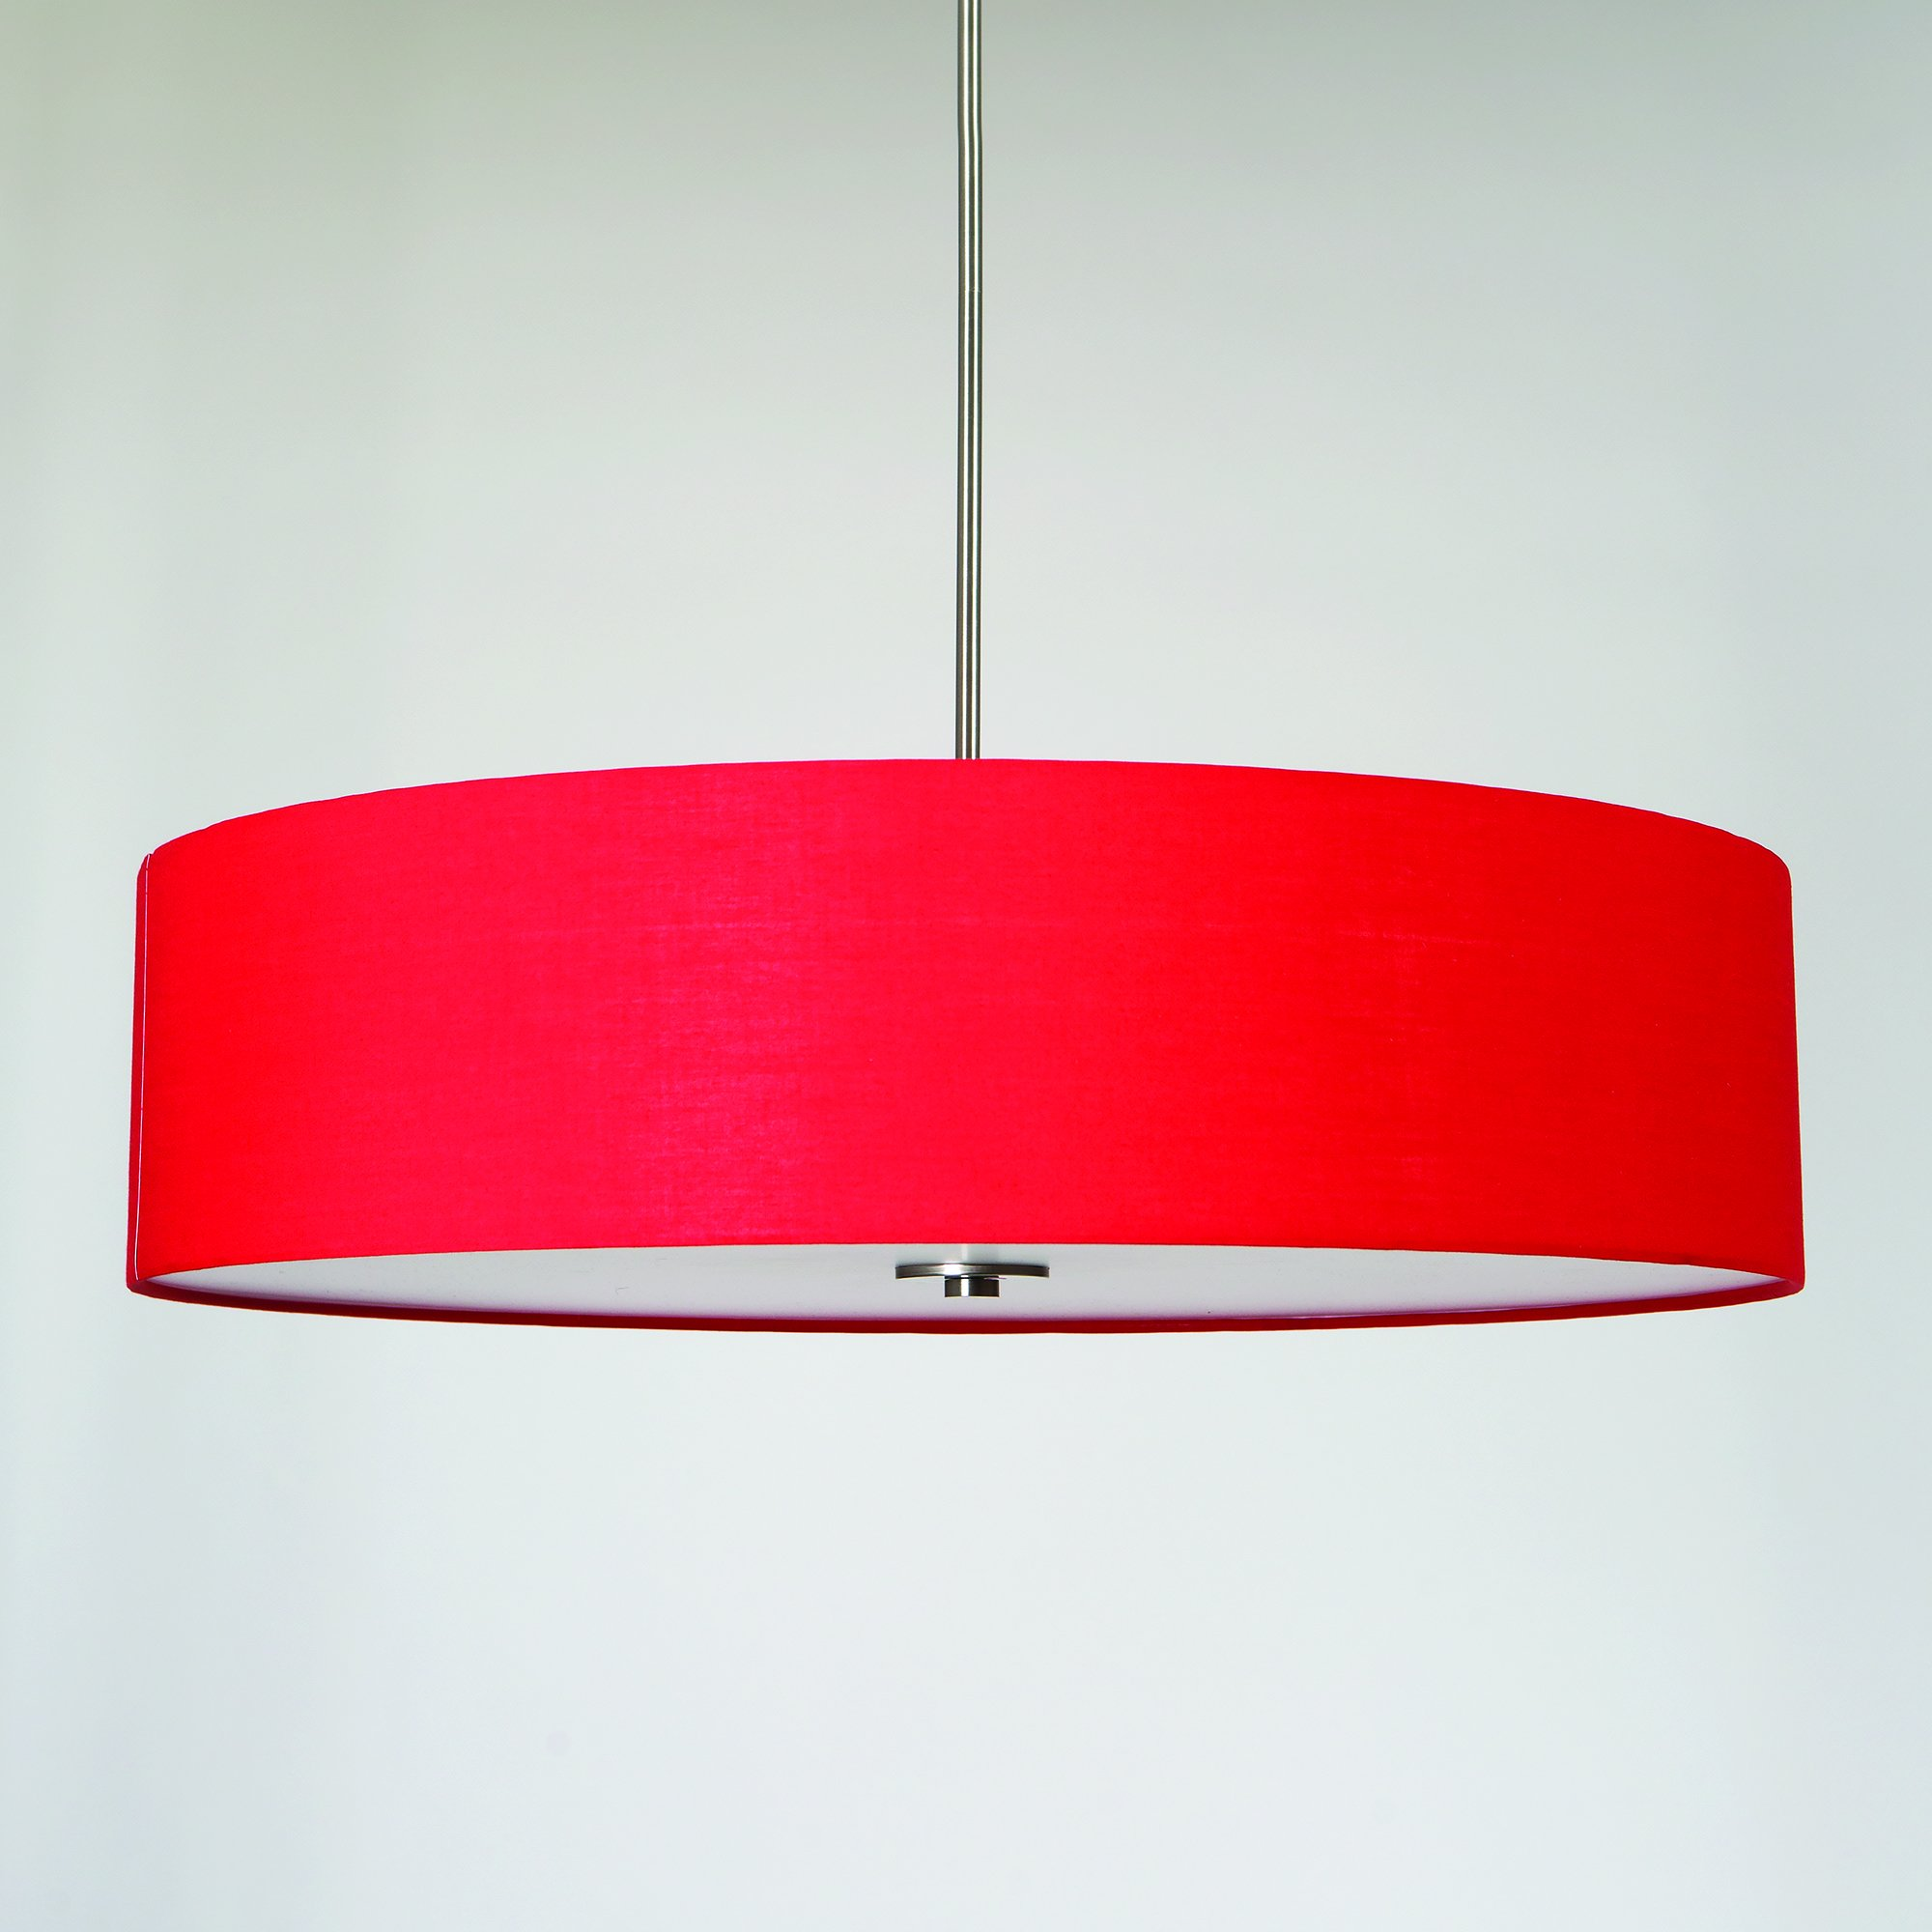 Yosemite Home Decor SH3007-5P-CPRS Lyell Forks Family 5-Light Satin Steel Pendant with Chili Pepper Red Drum Shade, Red by Yosemite Home Decor